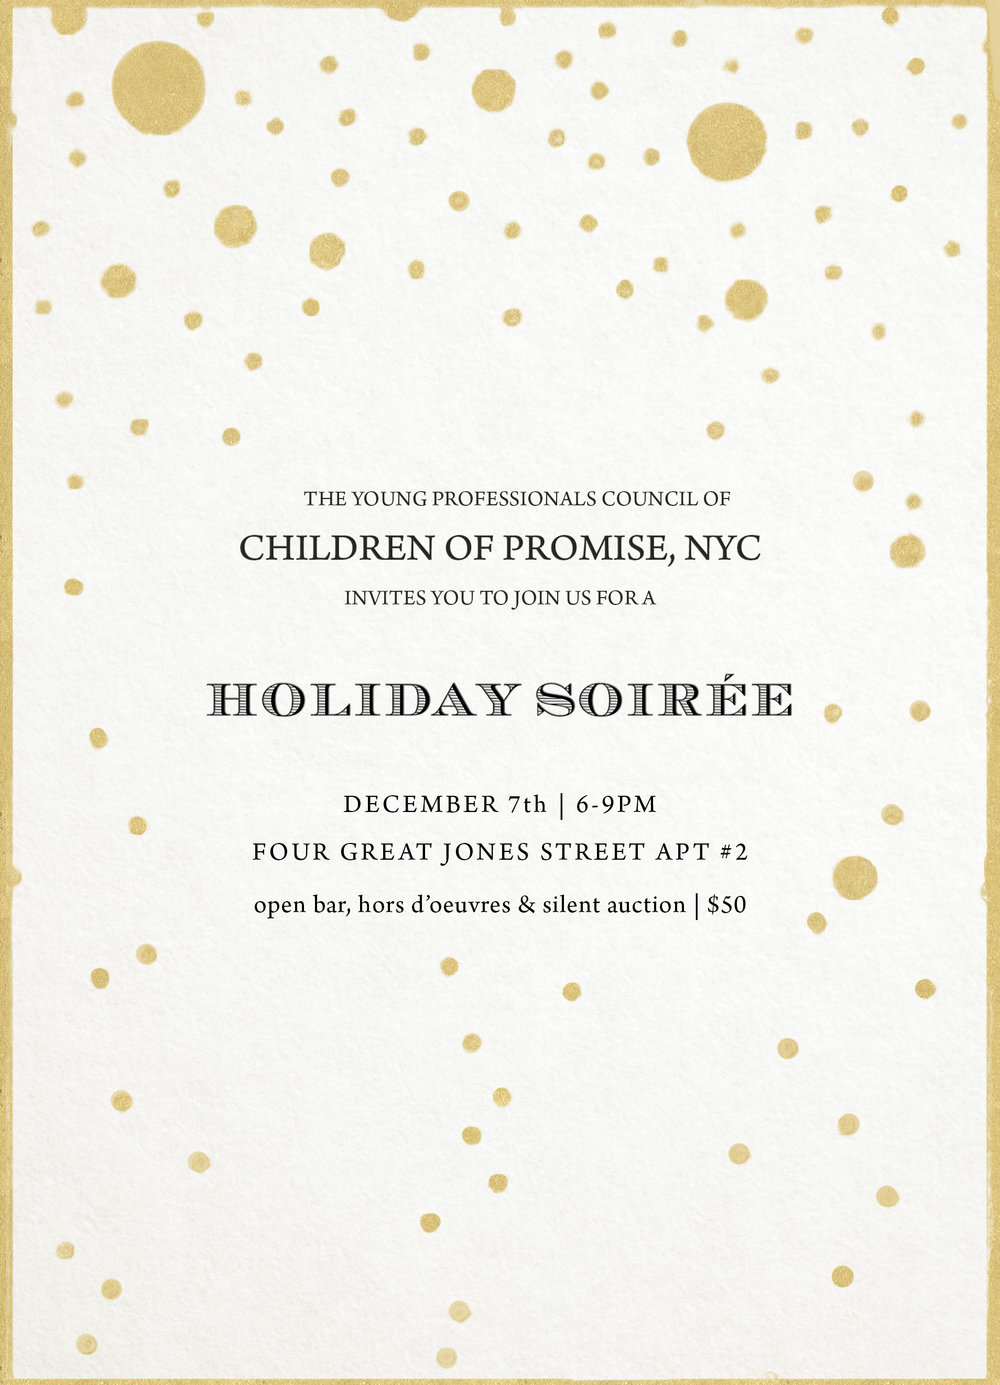 Holiday Soiree Invite.jpg